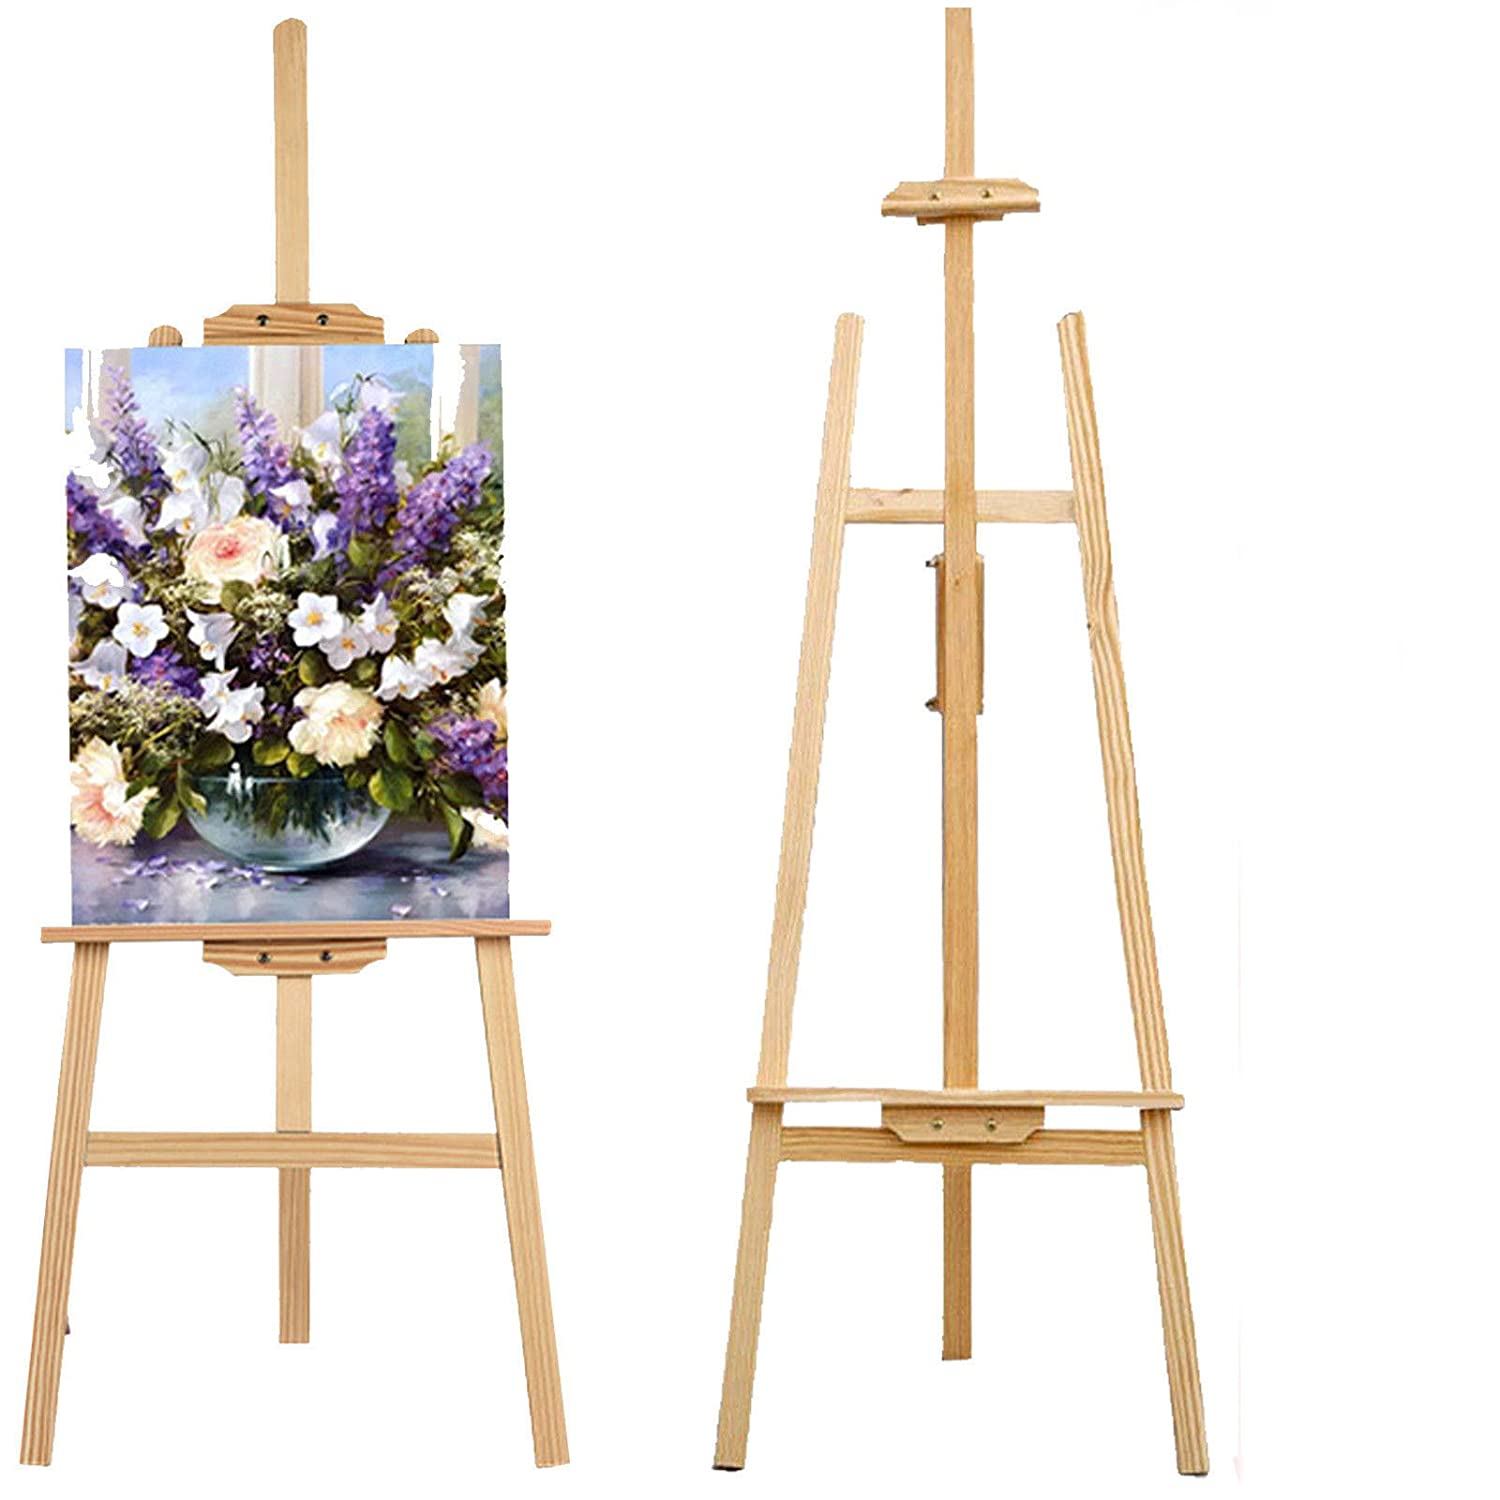 1.50M/59inch Studio Easel Wooden A-Frame Folding Pine Wood Artist Art Craft Display for Drawing ZhanGe Factory